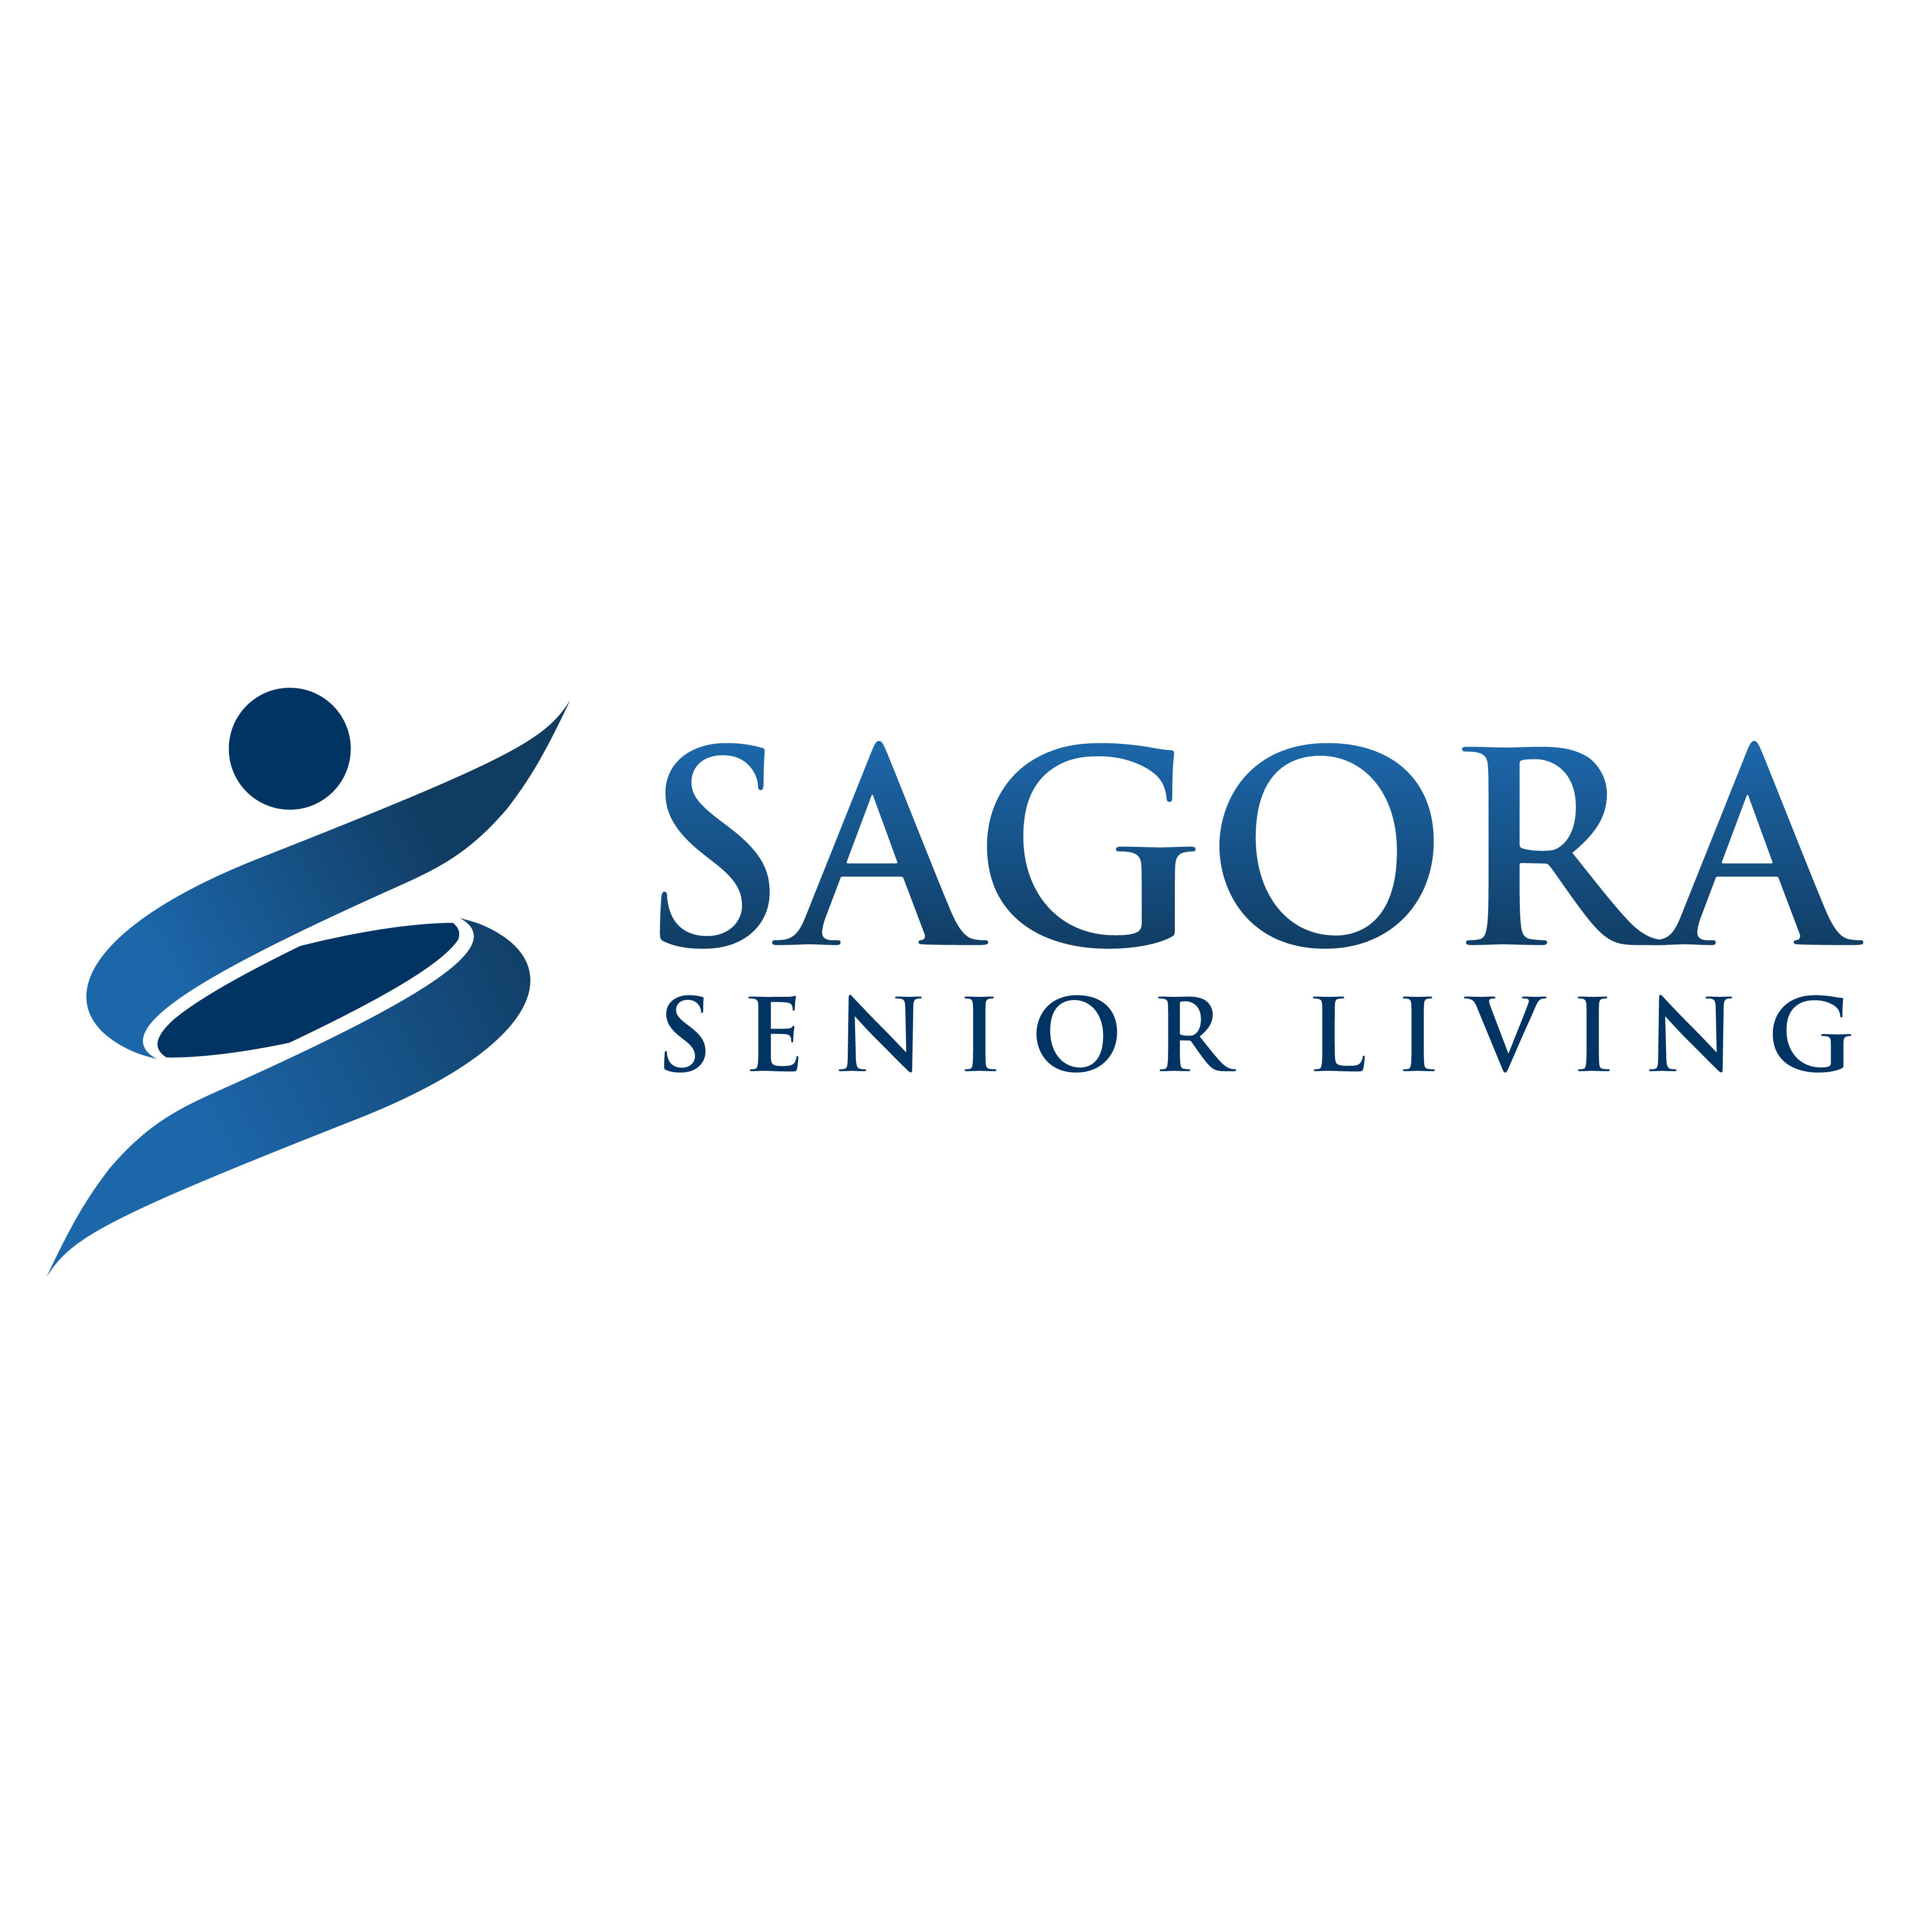 Sagora Senior Living